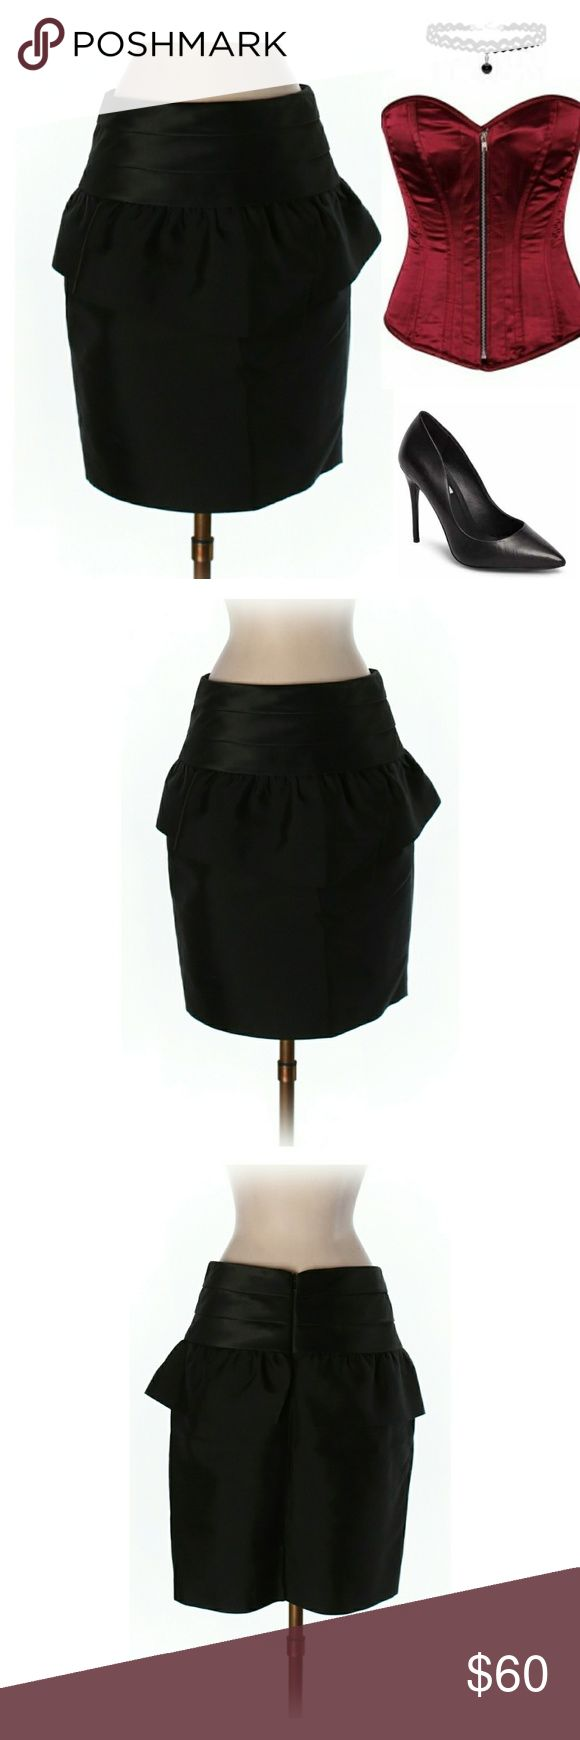 """New! NWOT Reiss Silk Peplum Skirt Approx 18.5"""" Length, 28"""" Waist. Solid black color. Concealed zipper down center back with hook and eye fastener. 5"""" silky band. Peplum layer under band with cross-over detail in front. 3"""" vent to center back hemline. Very sexy skirt! Would look great over a corset top. Peplum silhouette creates hourglass figure. 1st pic is for style inspo. NWOT. Feel free to make an offer!   ***I'm lucky that my buyers have been amazing, but I video record all purchases…"""